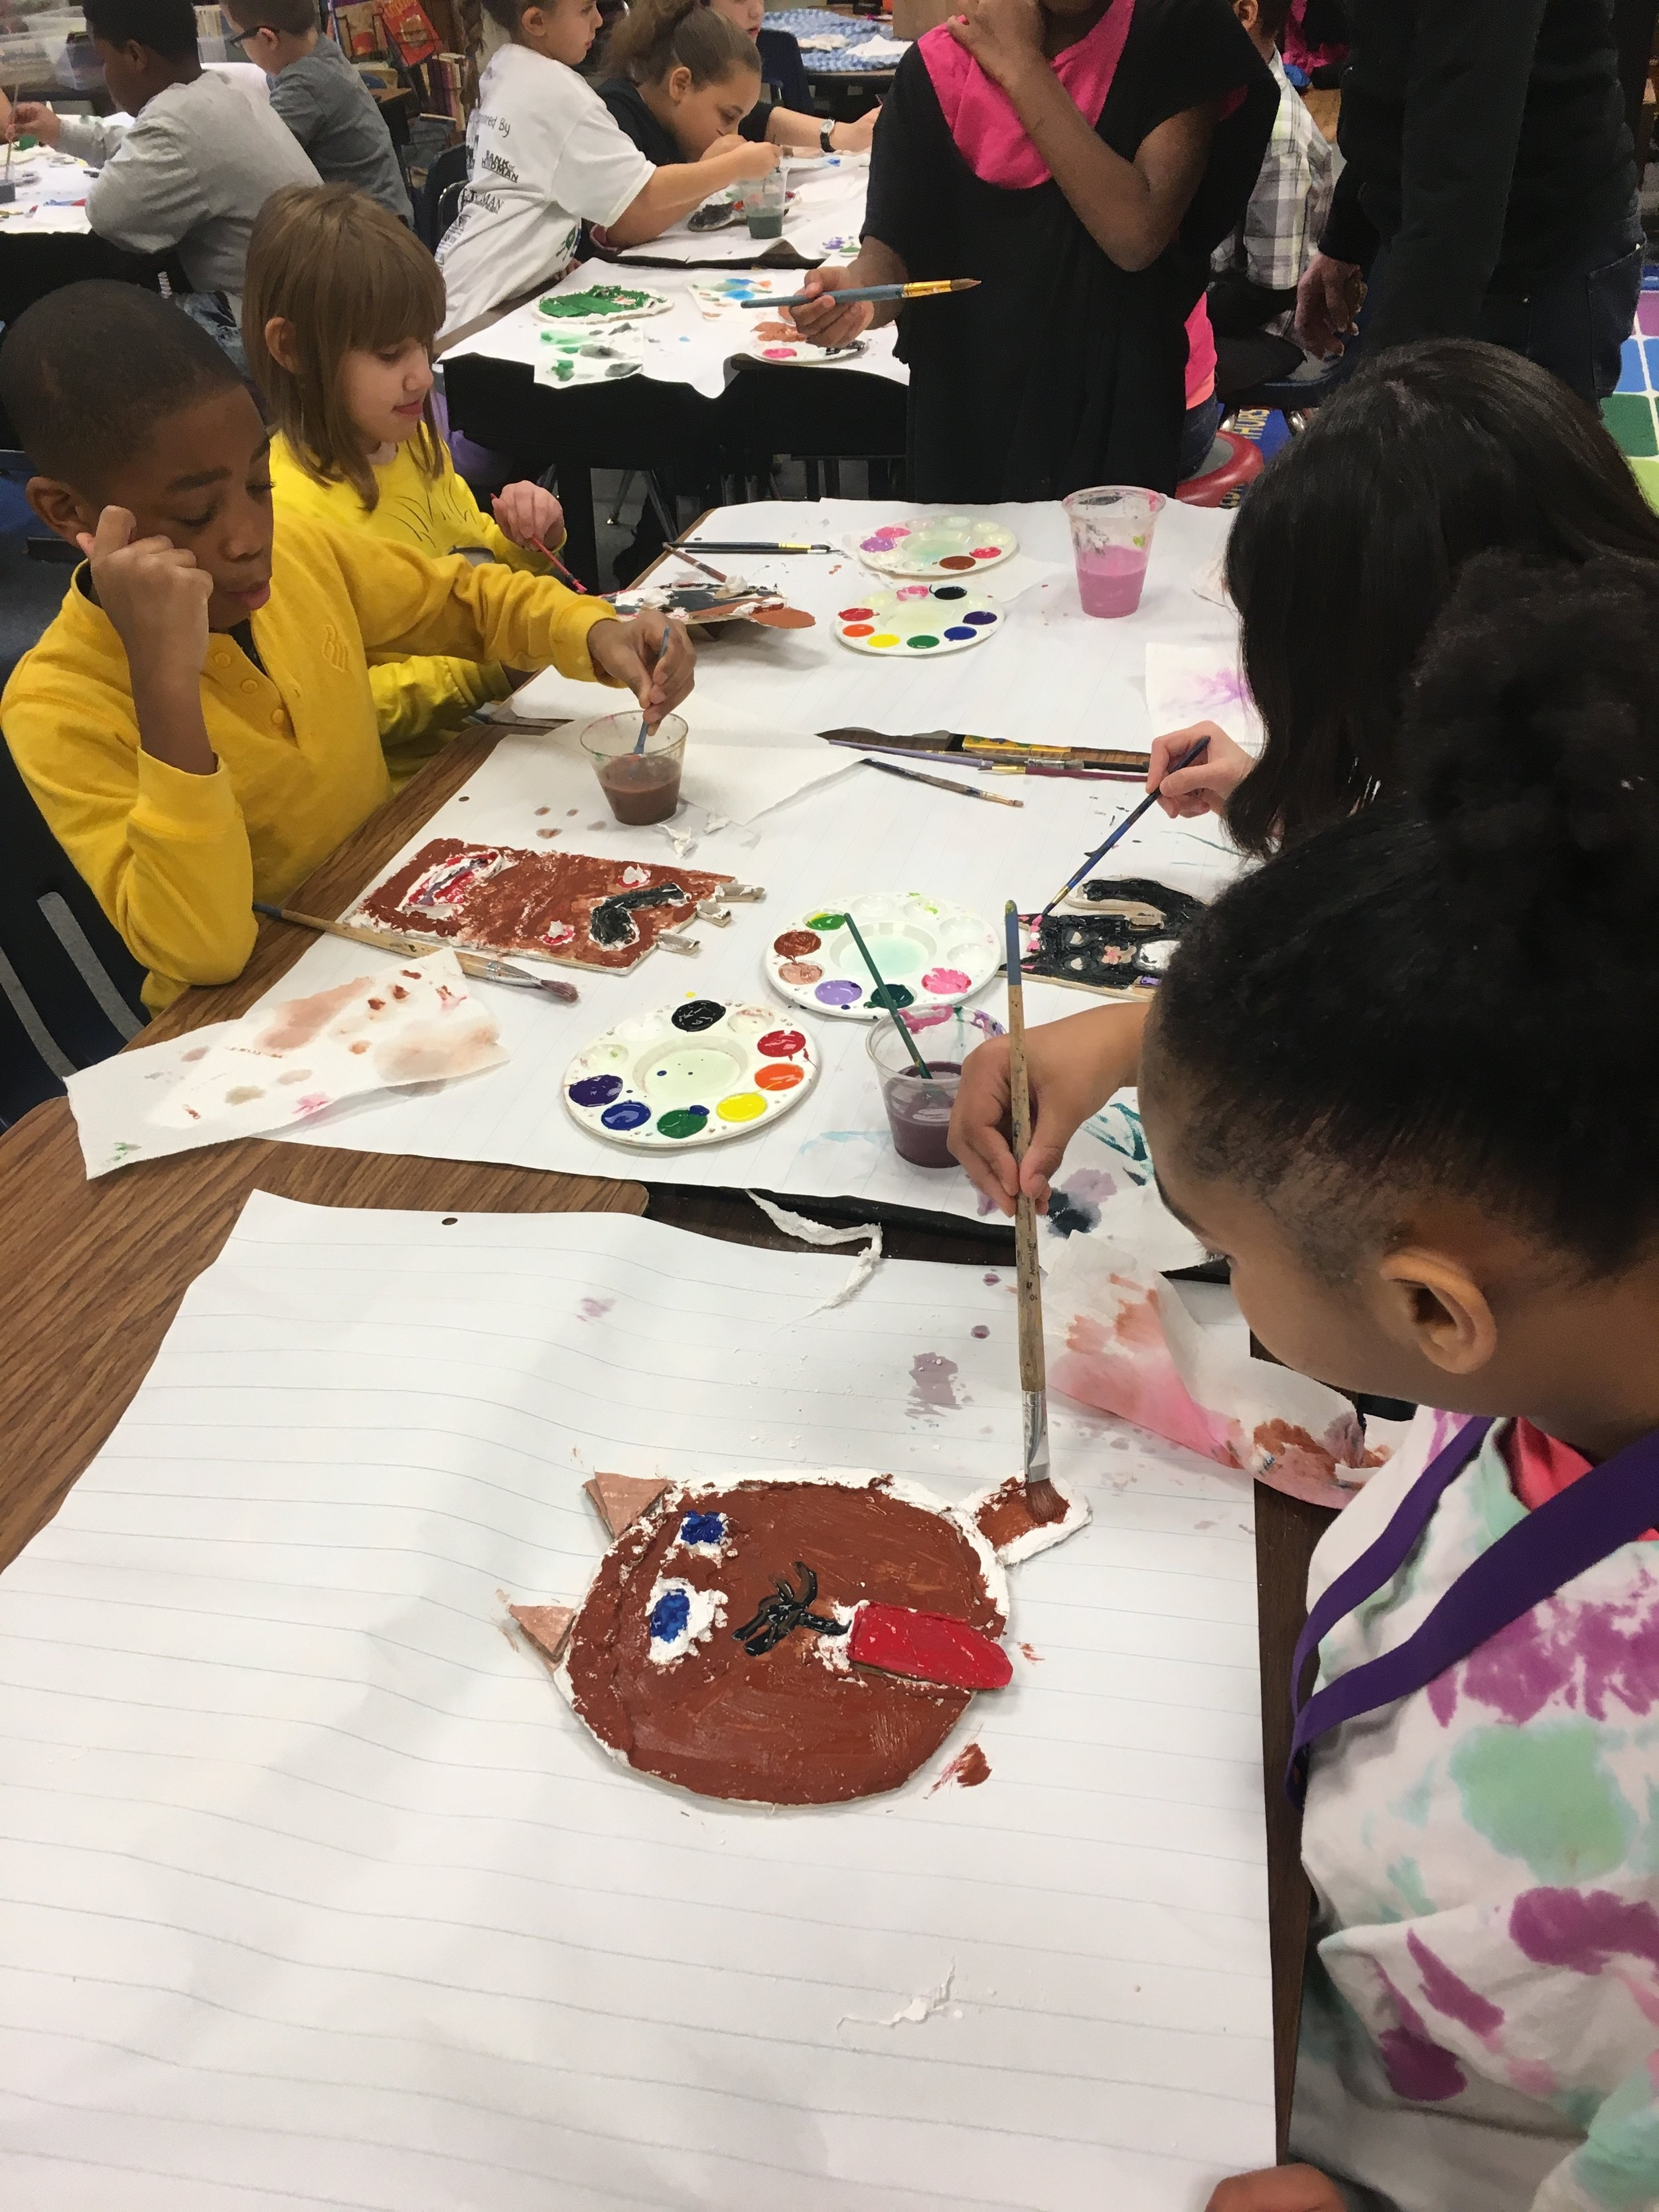 We've been having a wild time at Field Elementary School making masks with the third grade! These creative students used wood, plaster, paint, and embellishments to create these whimsical works!